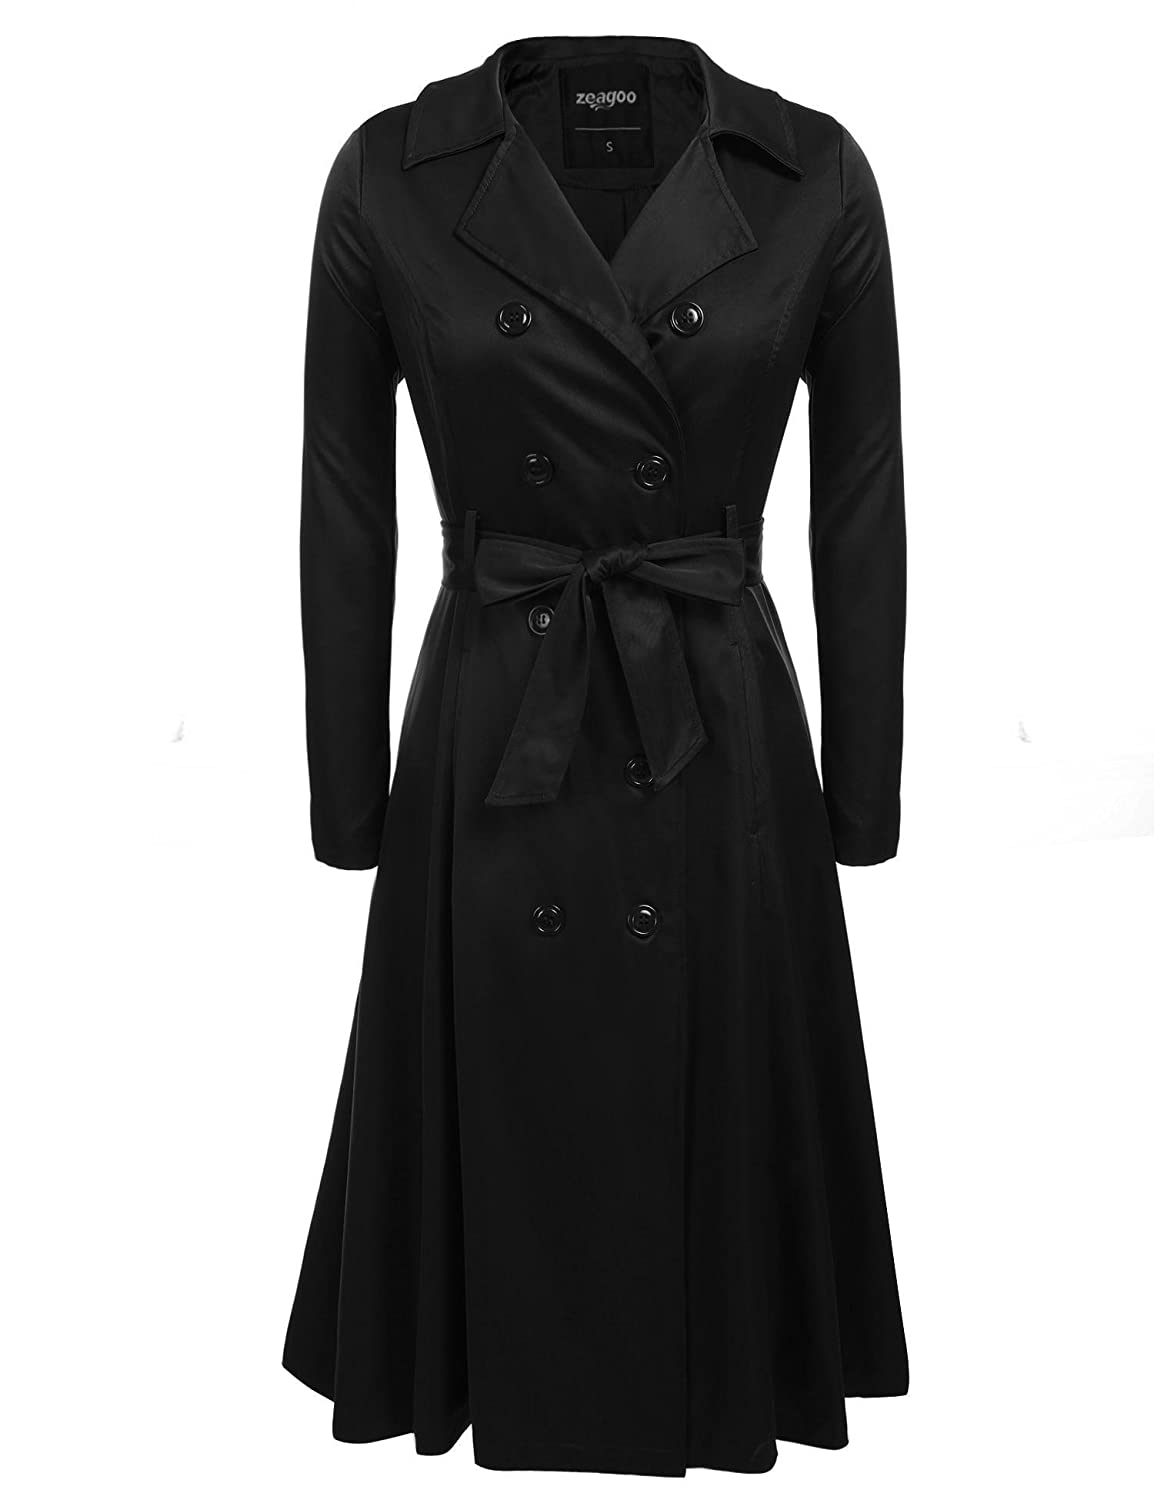 Vintage Coats & Jackets | Retro Coats and Jackets Zeagoo Womens Double-Breasted Long Trench Coat with Belt $59.88 AT vintagedancer.com